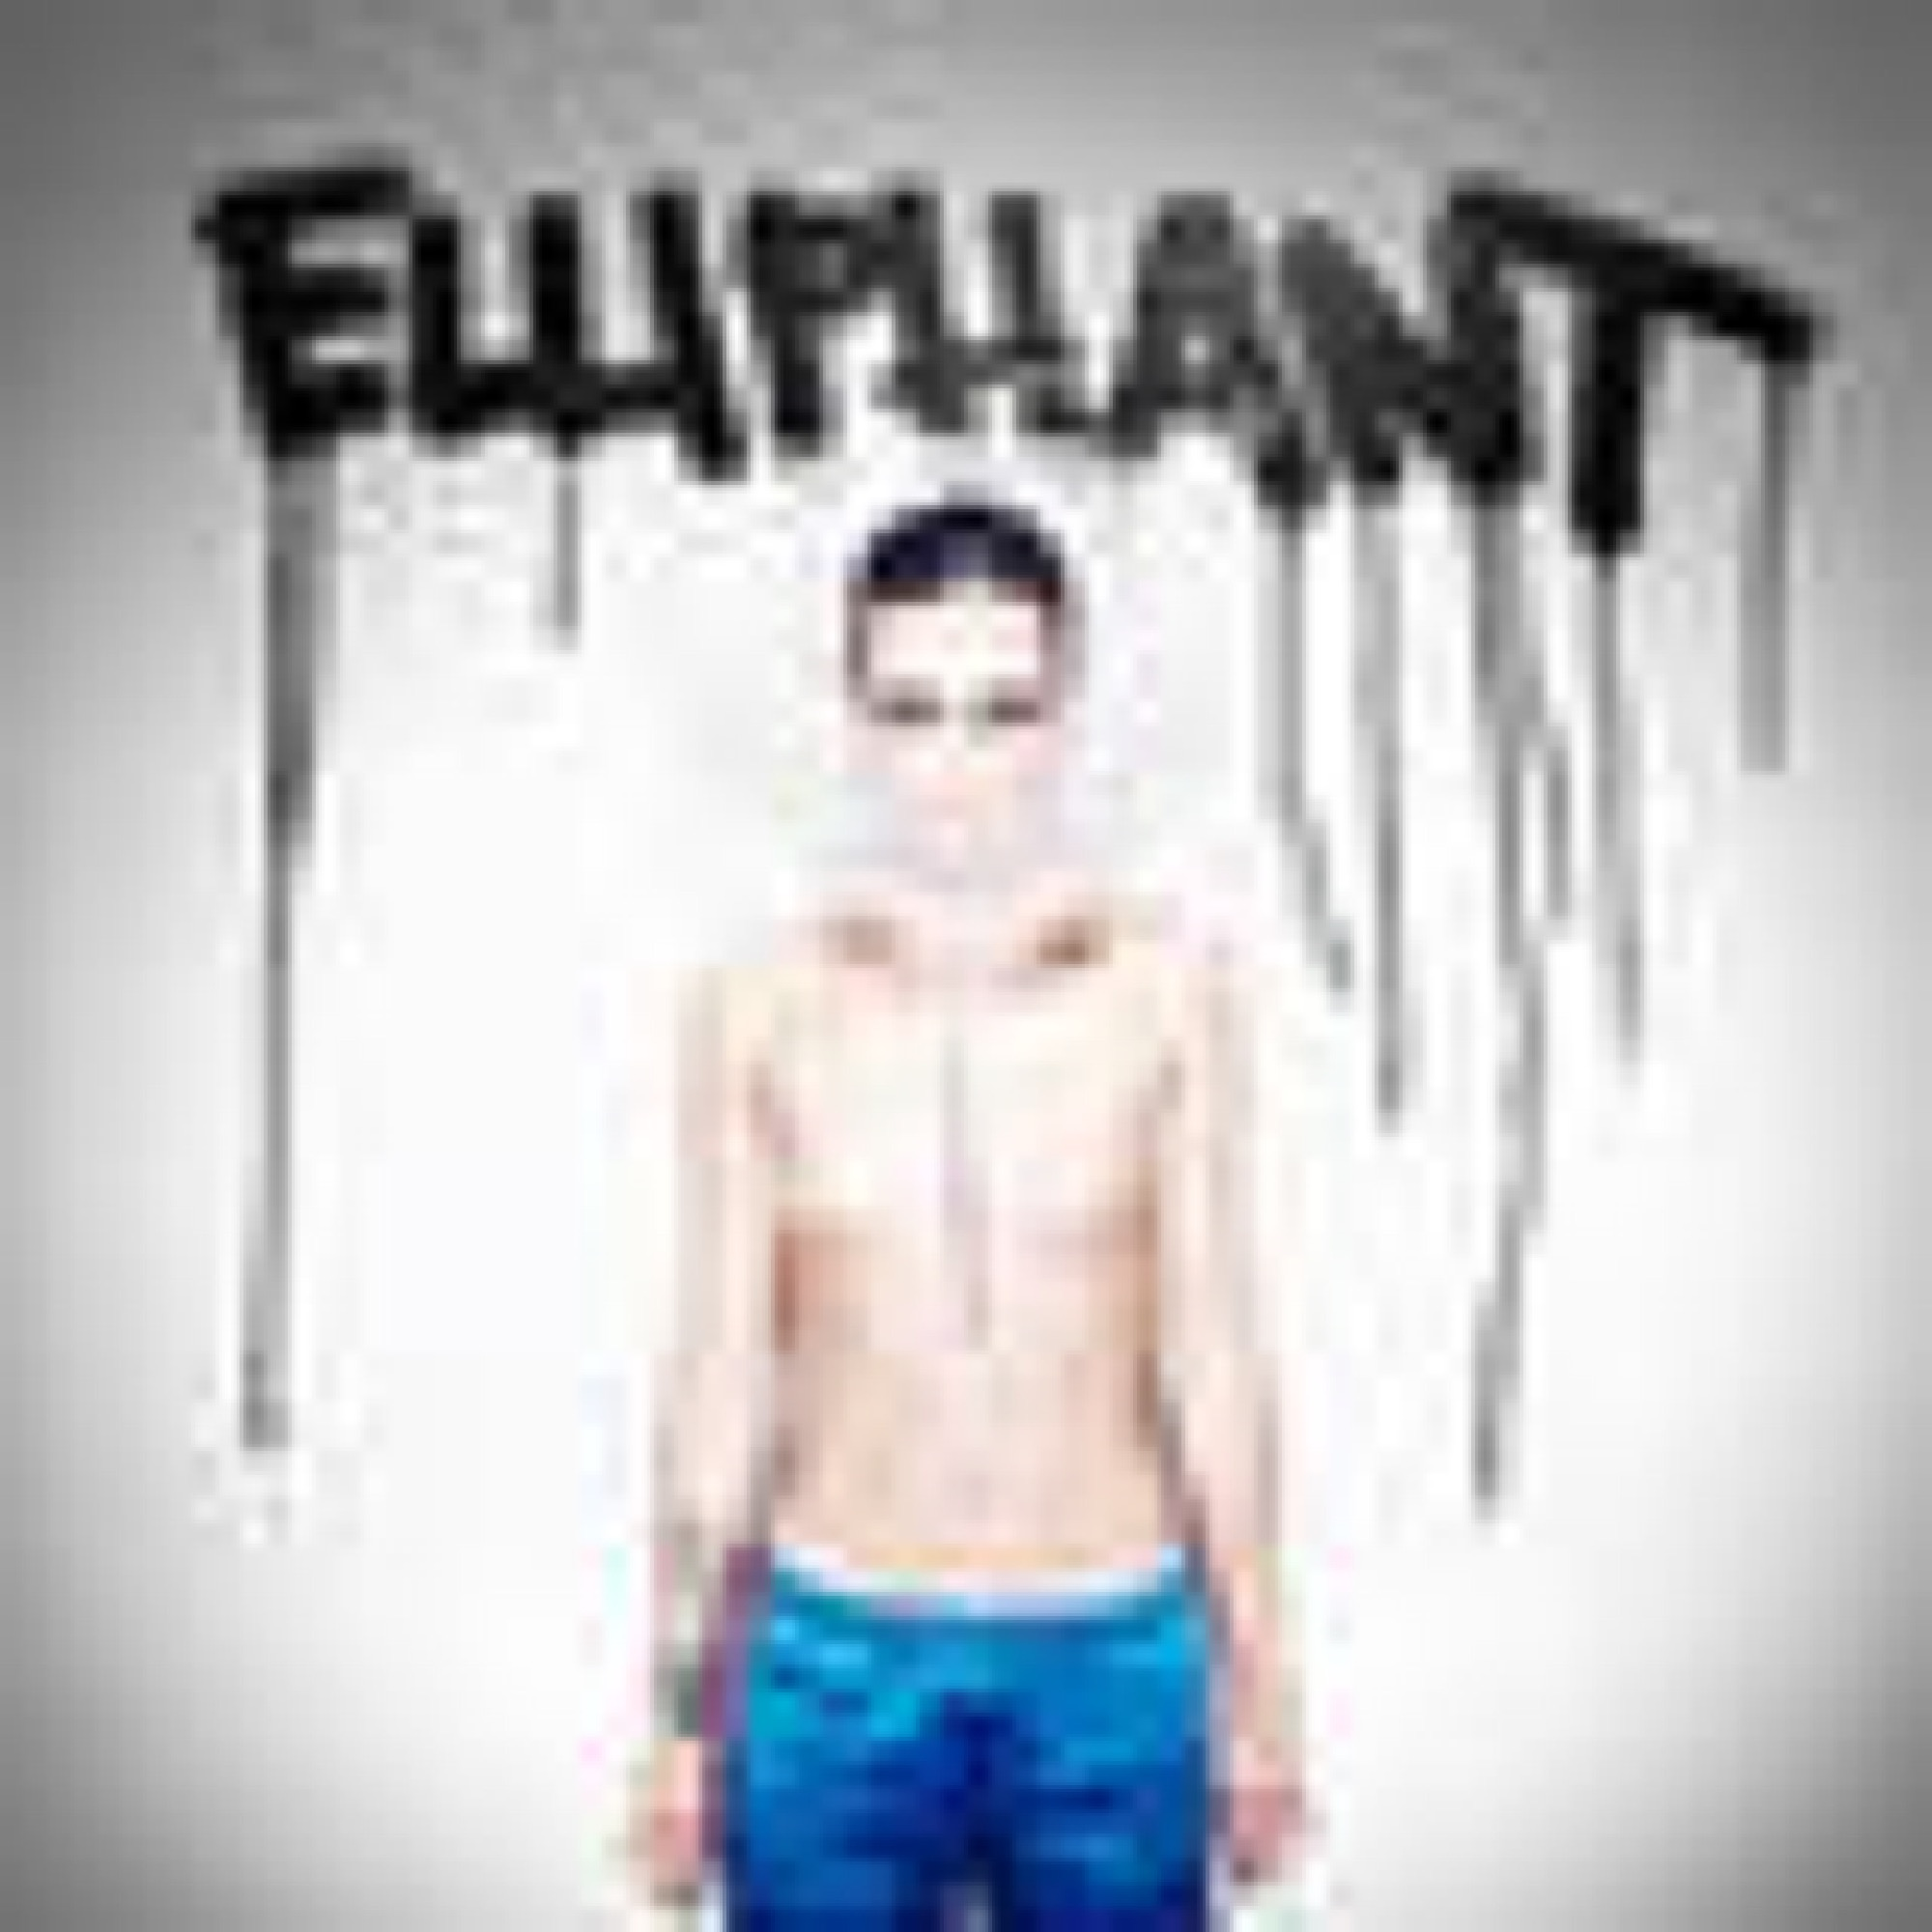 Elliphant / Universal Music